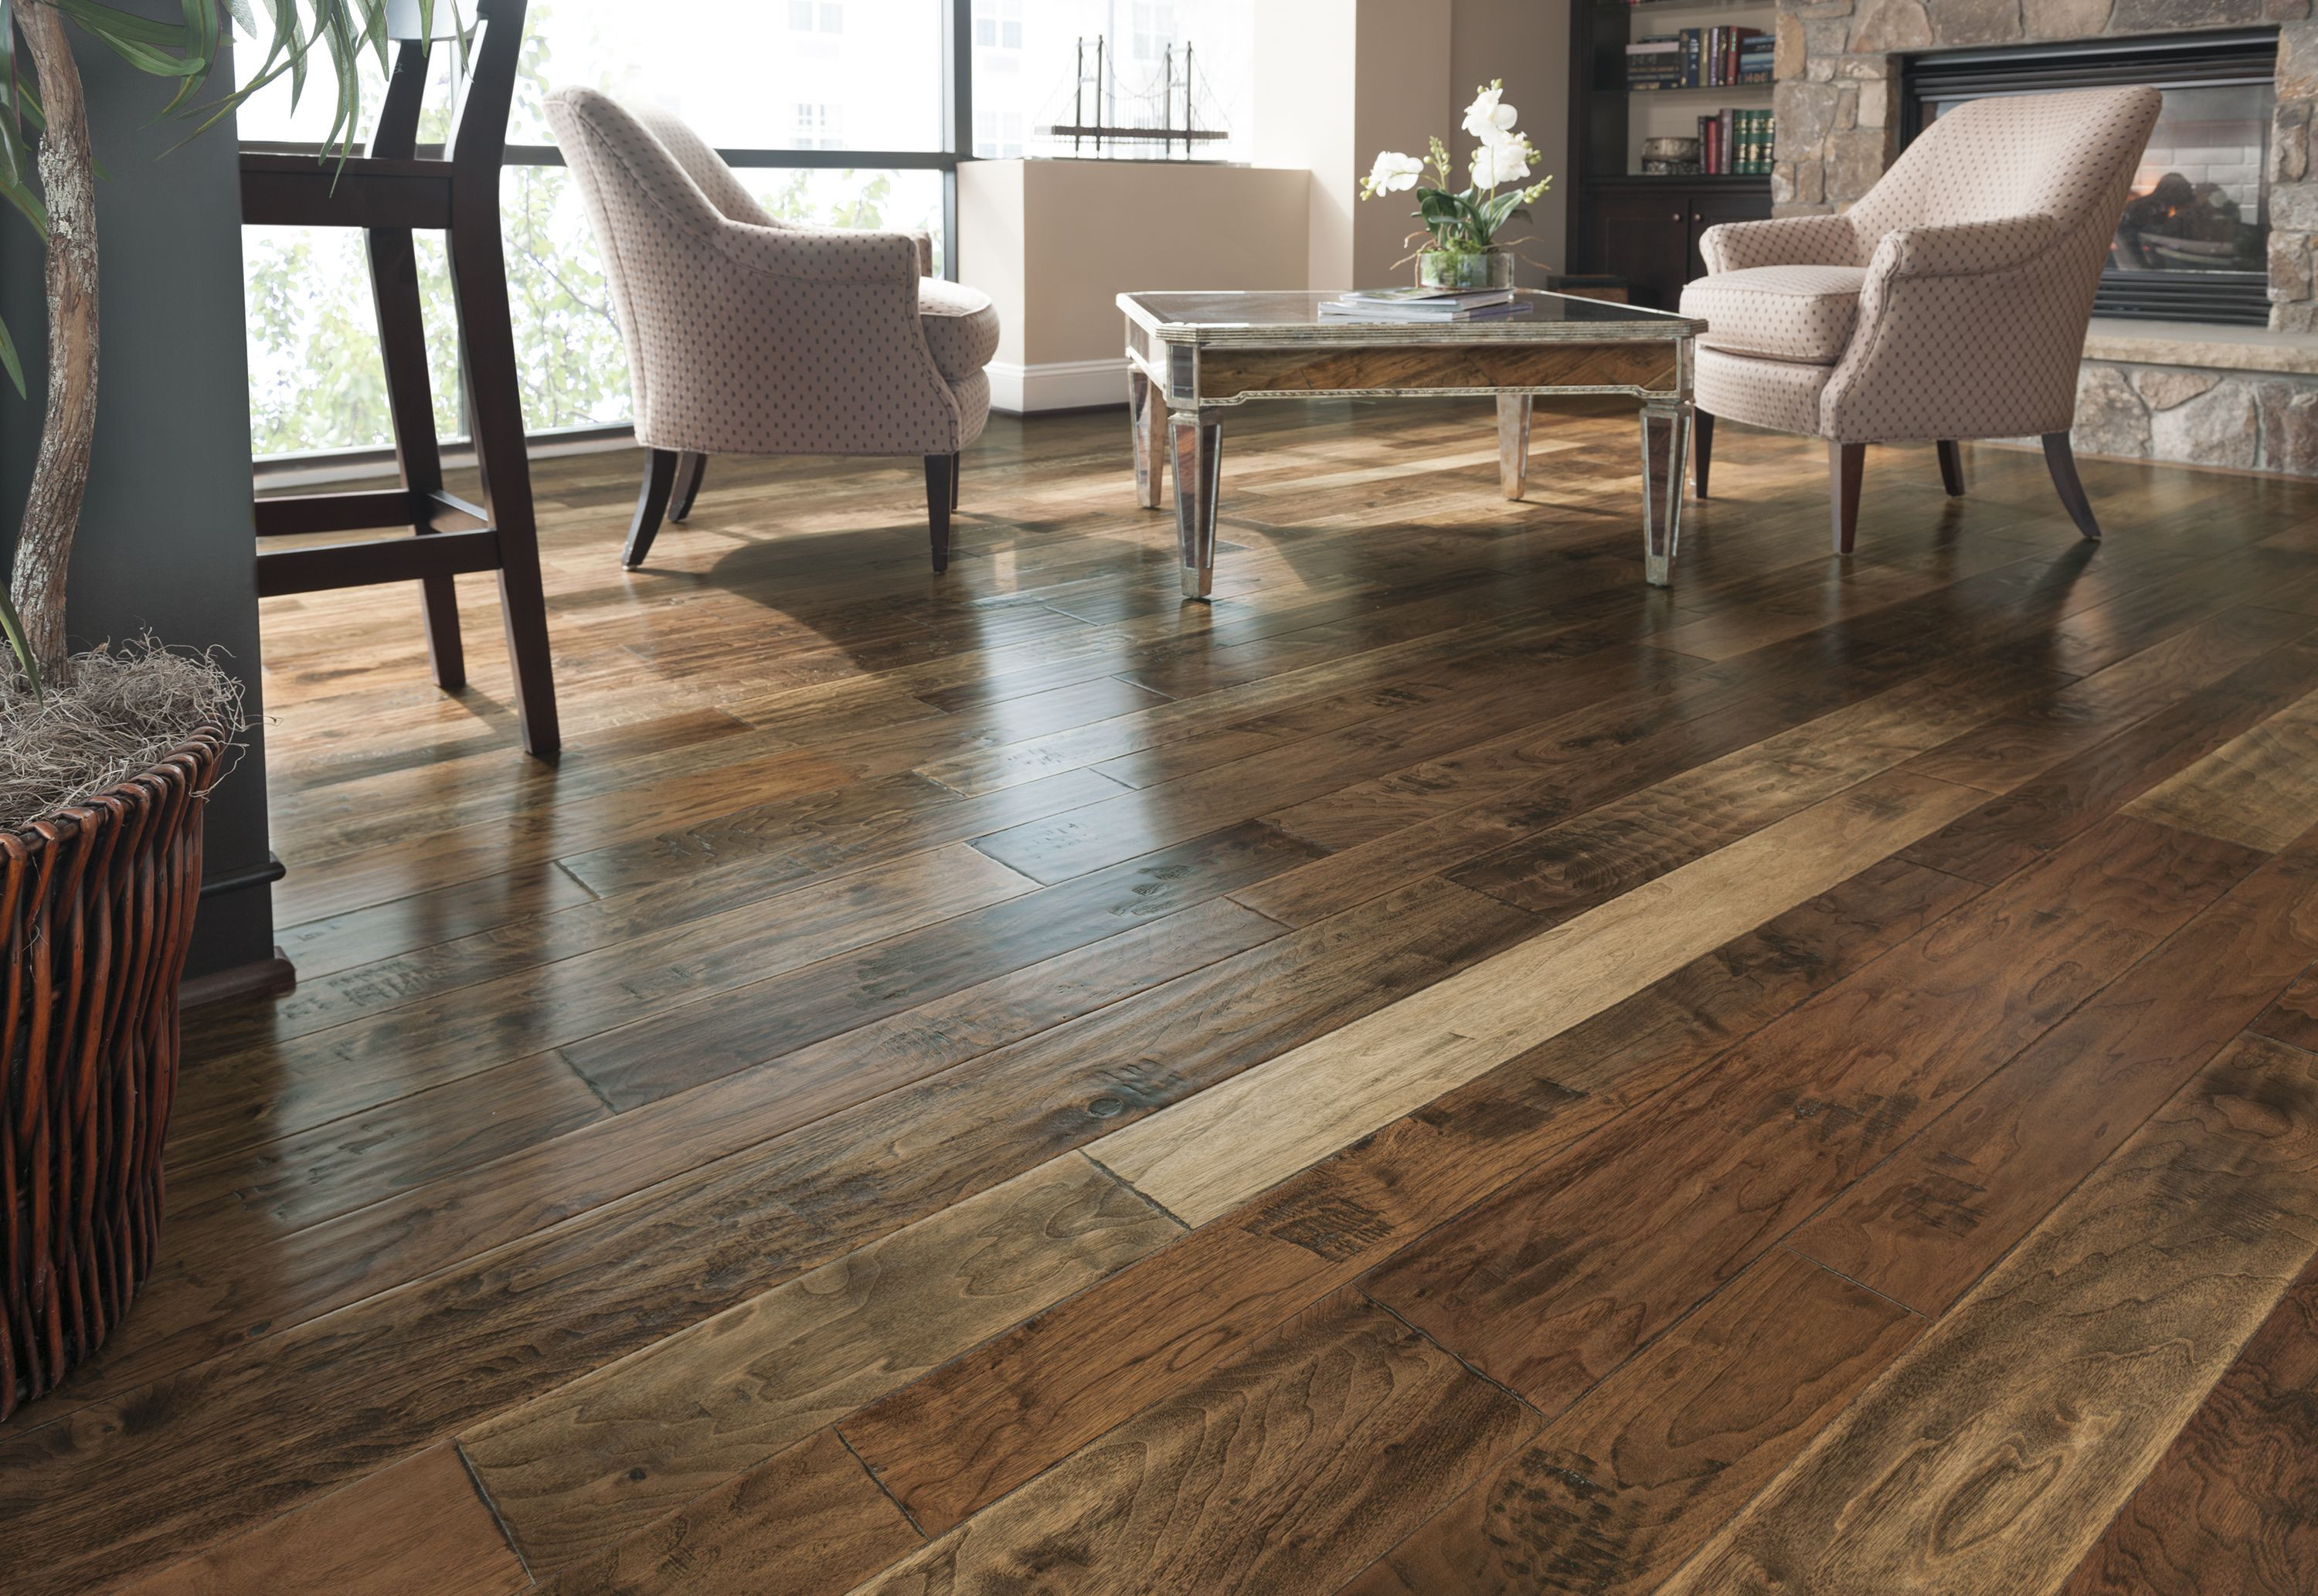 hardwood flooring installation portland oregon of wood floor refinishing toll brothers installed this fantastic wood pertaining to wood floor refinishing toll brothers installed this fantastic wood floor in their chantilly